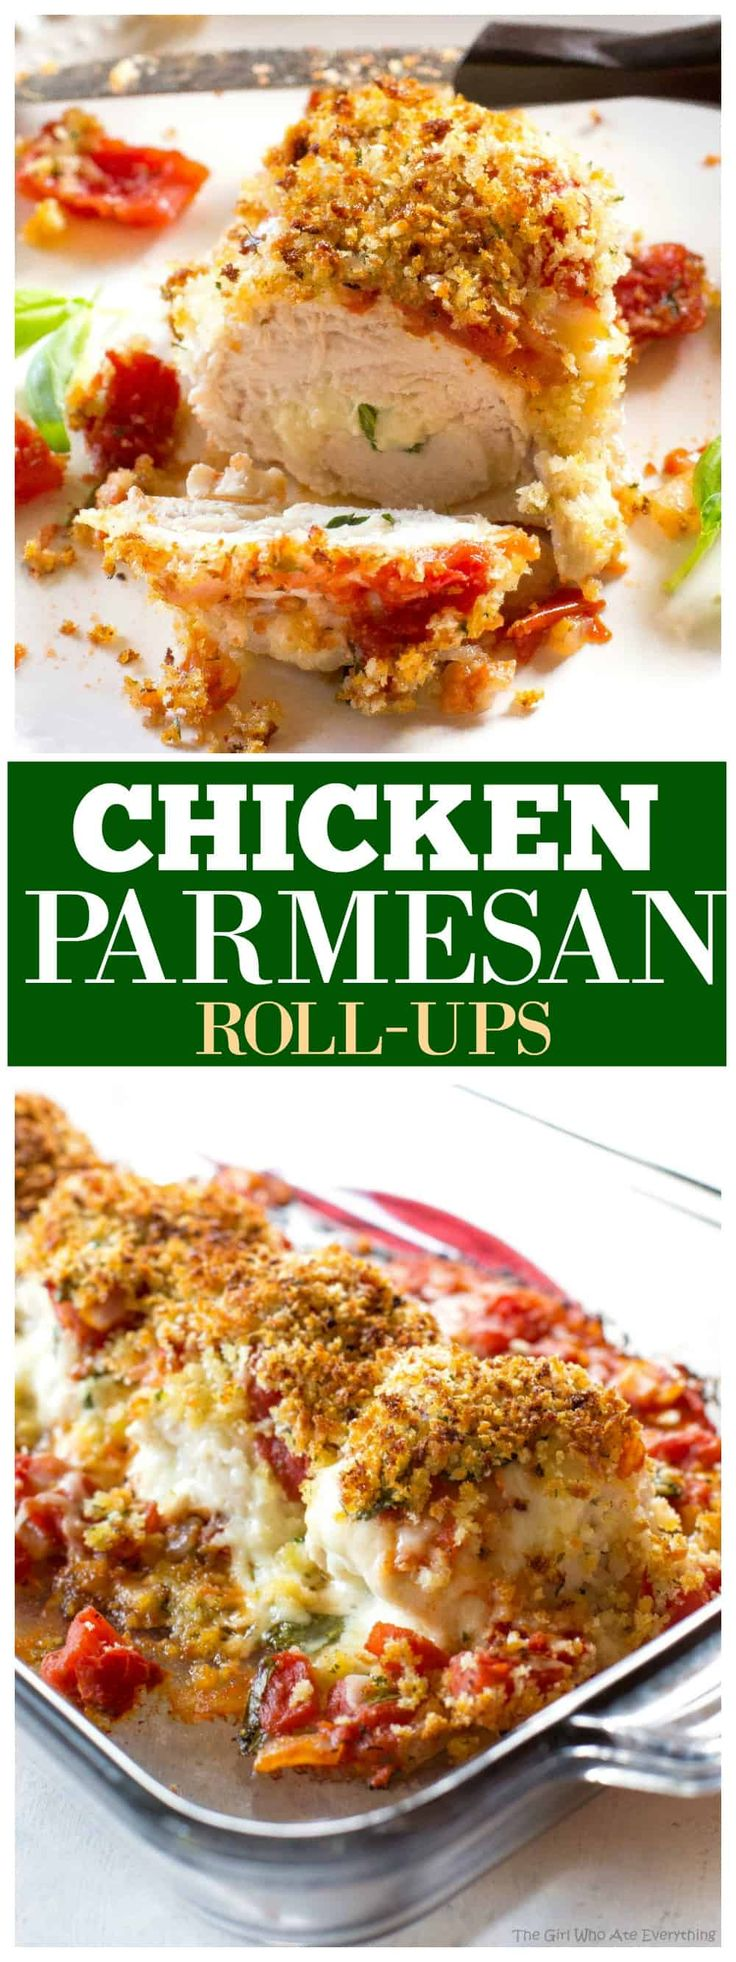 These Chicken Parmesan Roll-Ups Are An Easy Dinner Recipe -5444